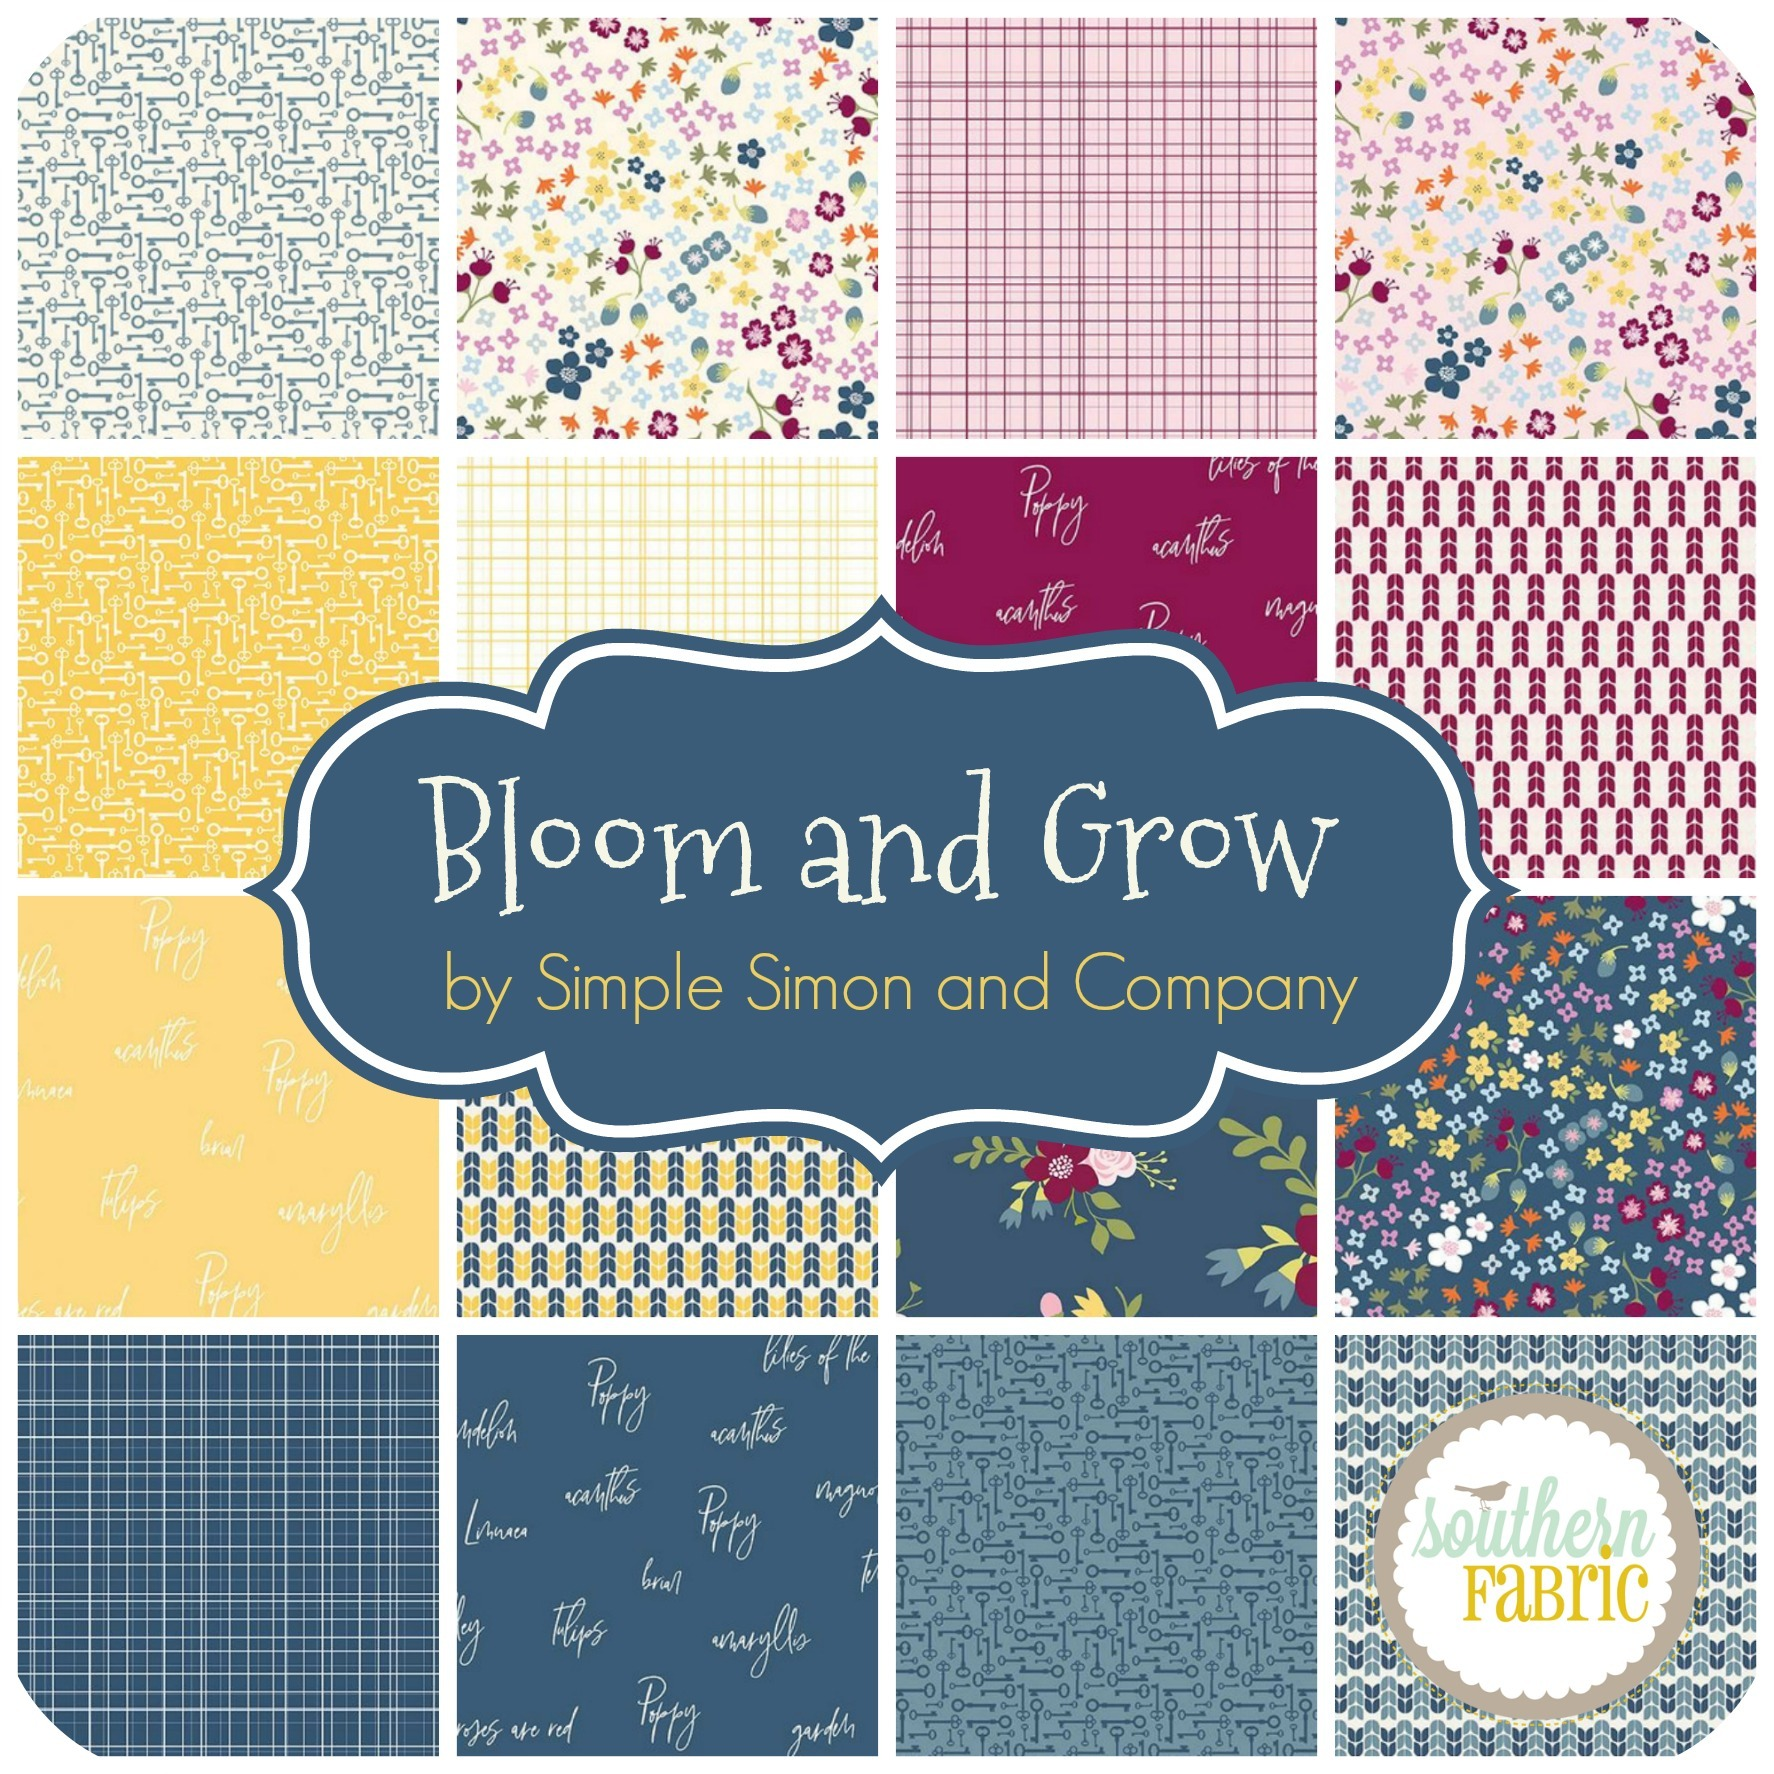 Bloom and Grow by Simple Simon and Co.